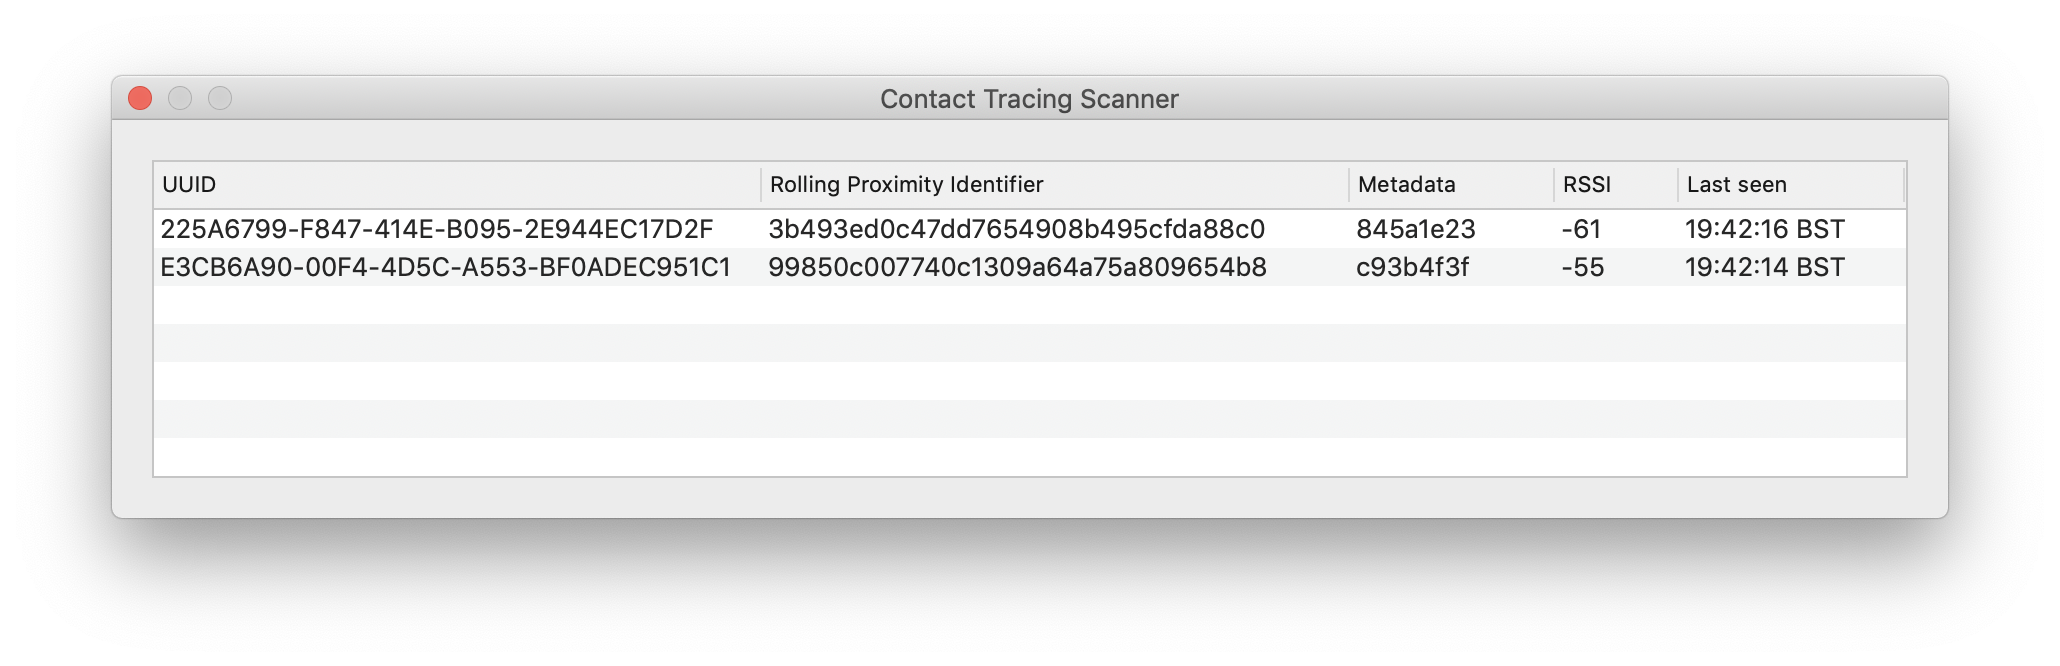 Contact Tracing Scanner using Swift for macOS